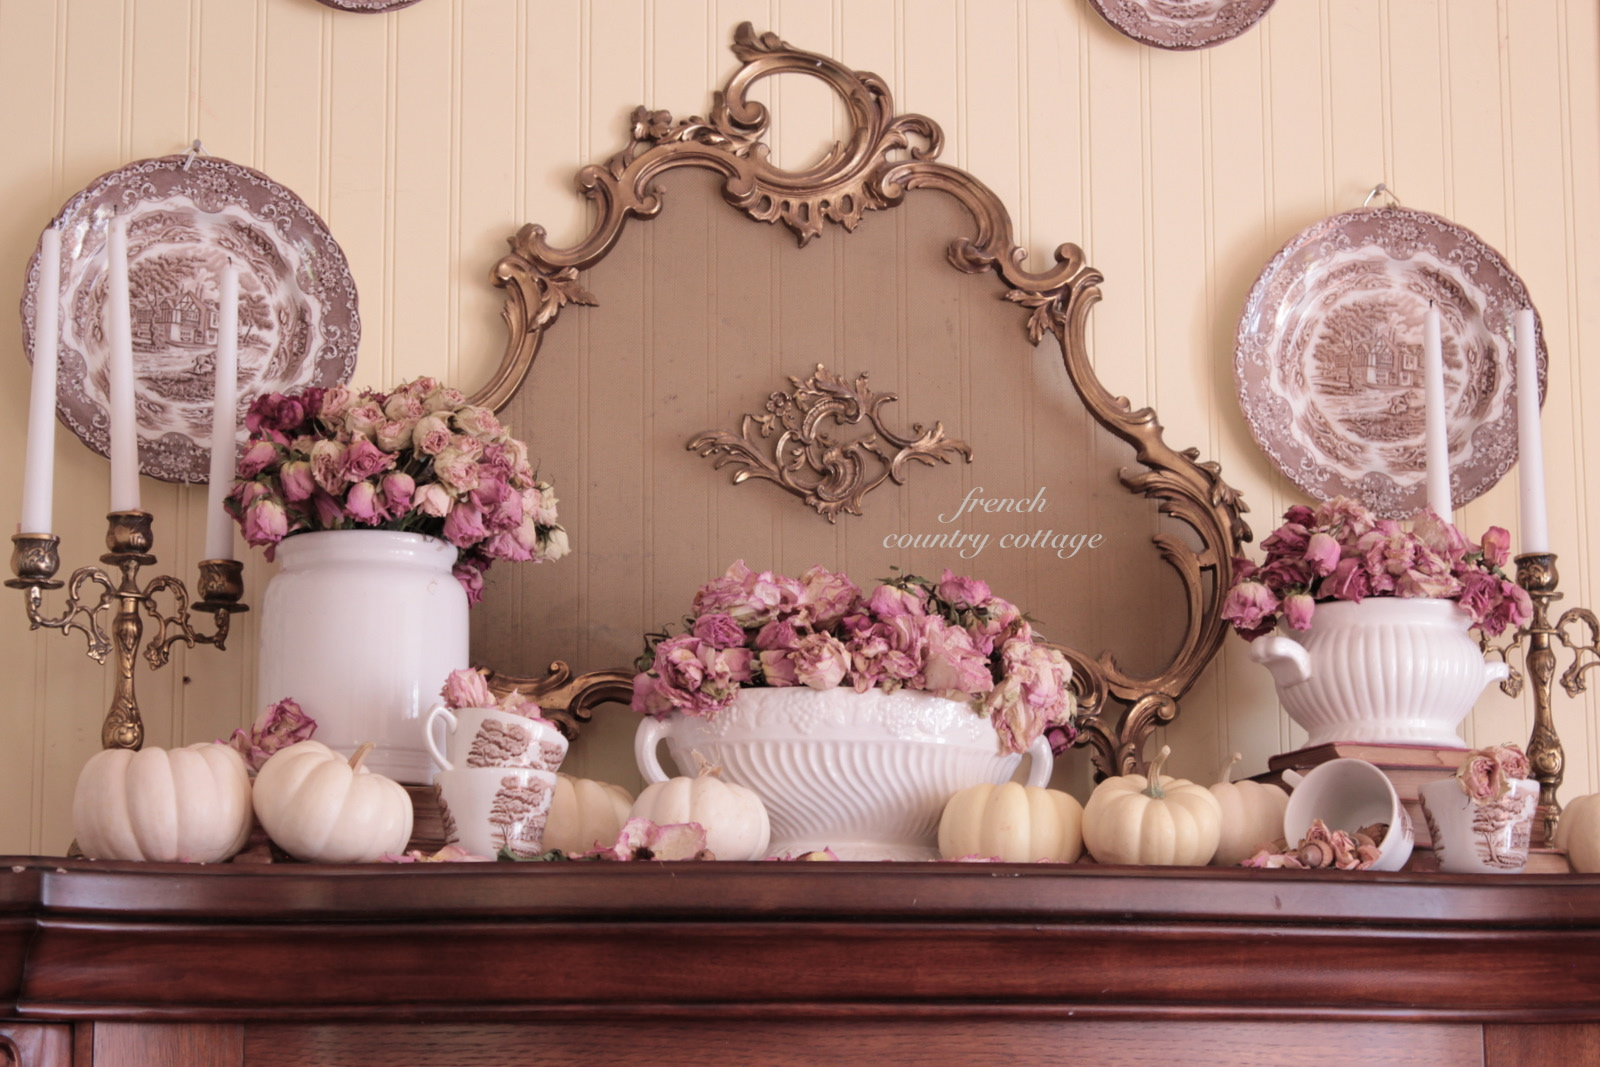 Nude Wandfarbe Romantic Autumn Mantel French Country Cottage